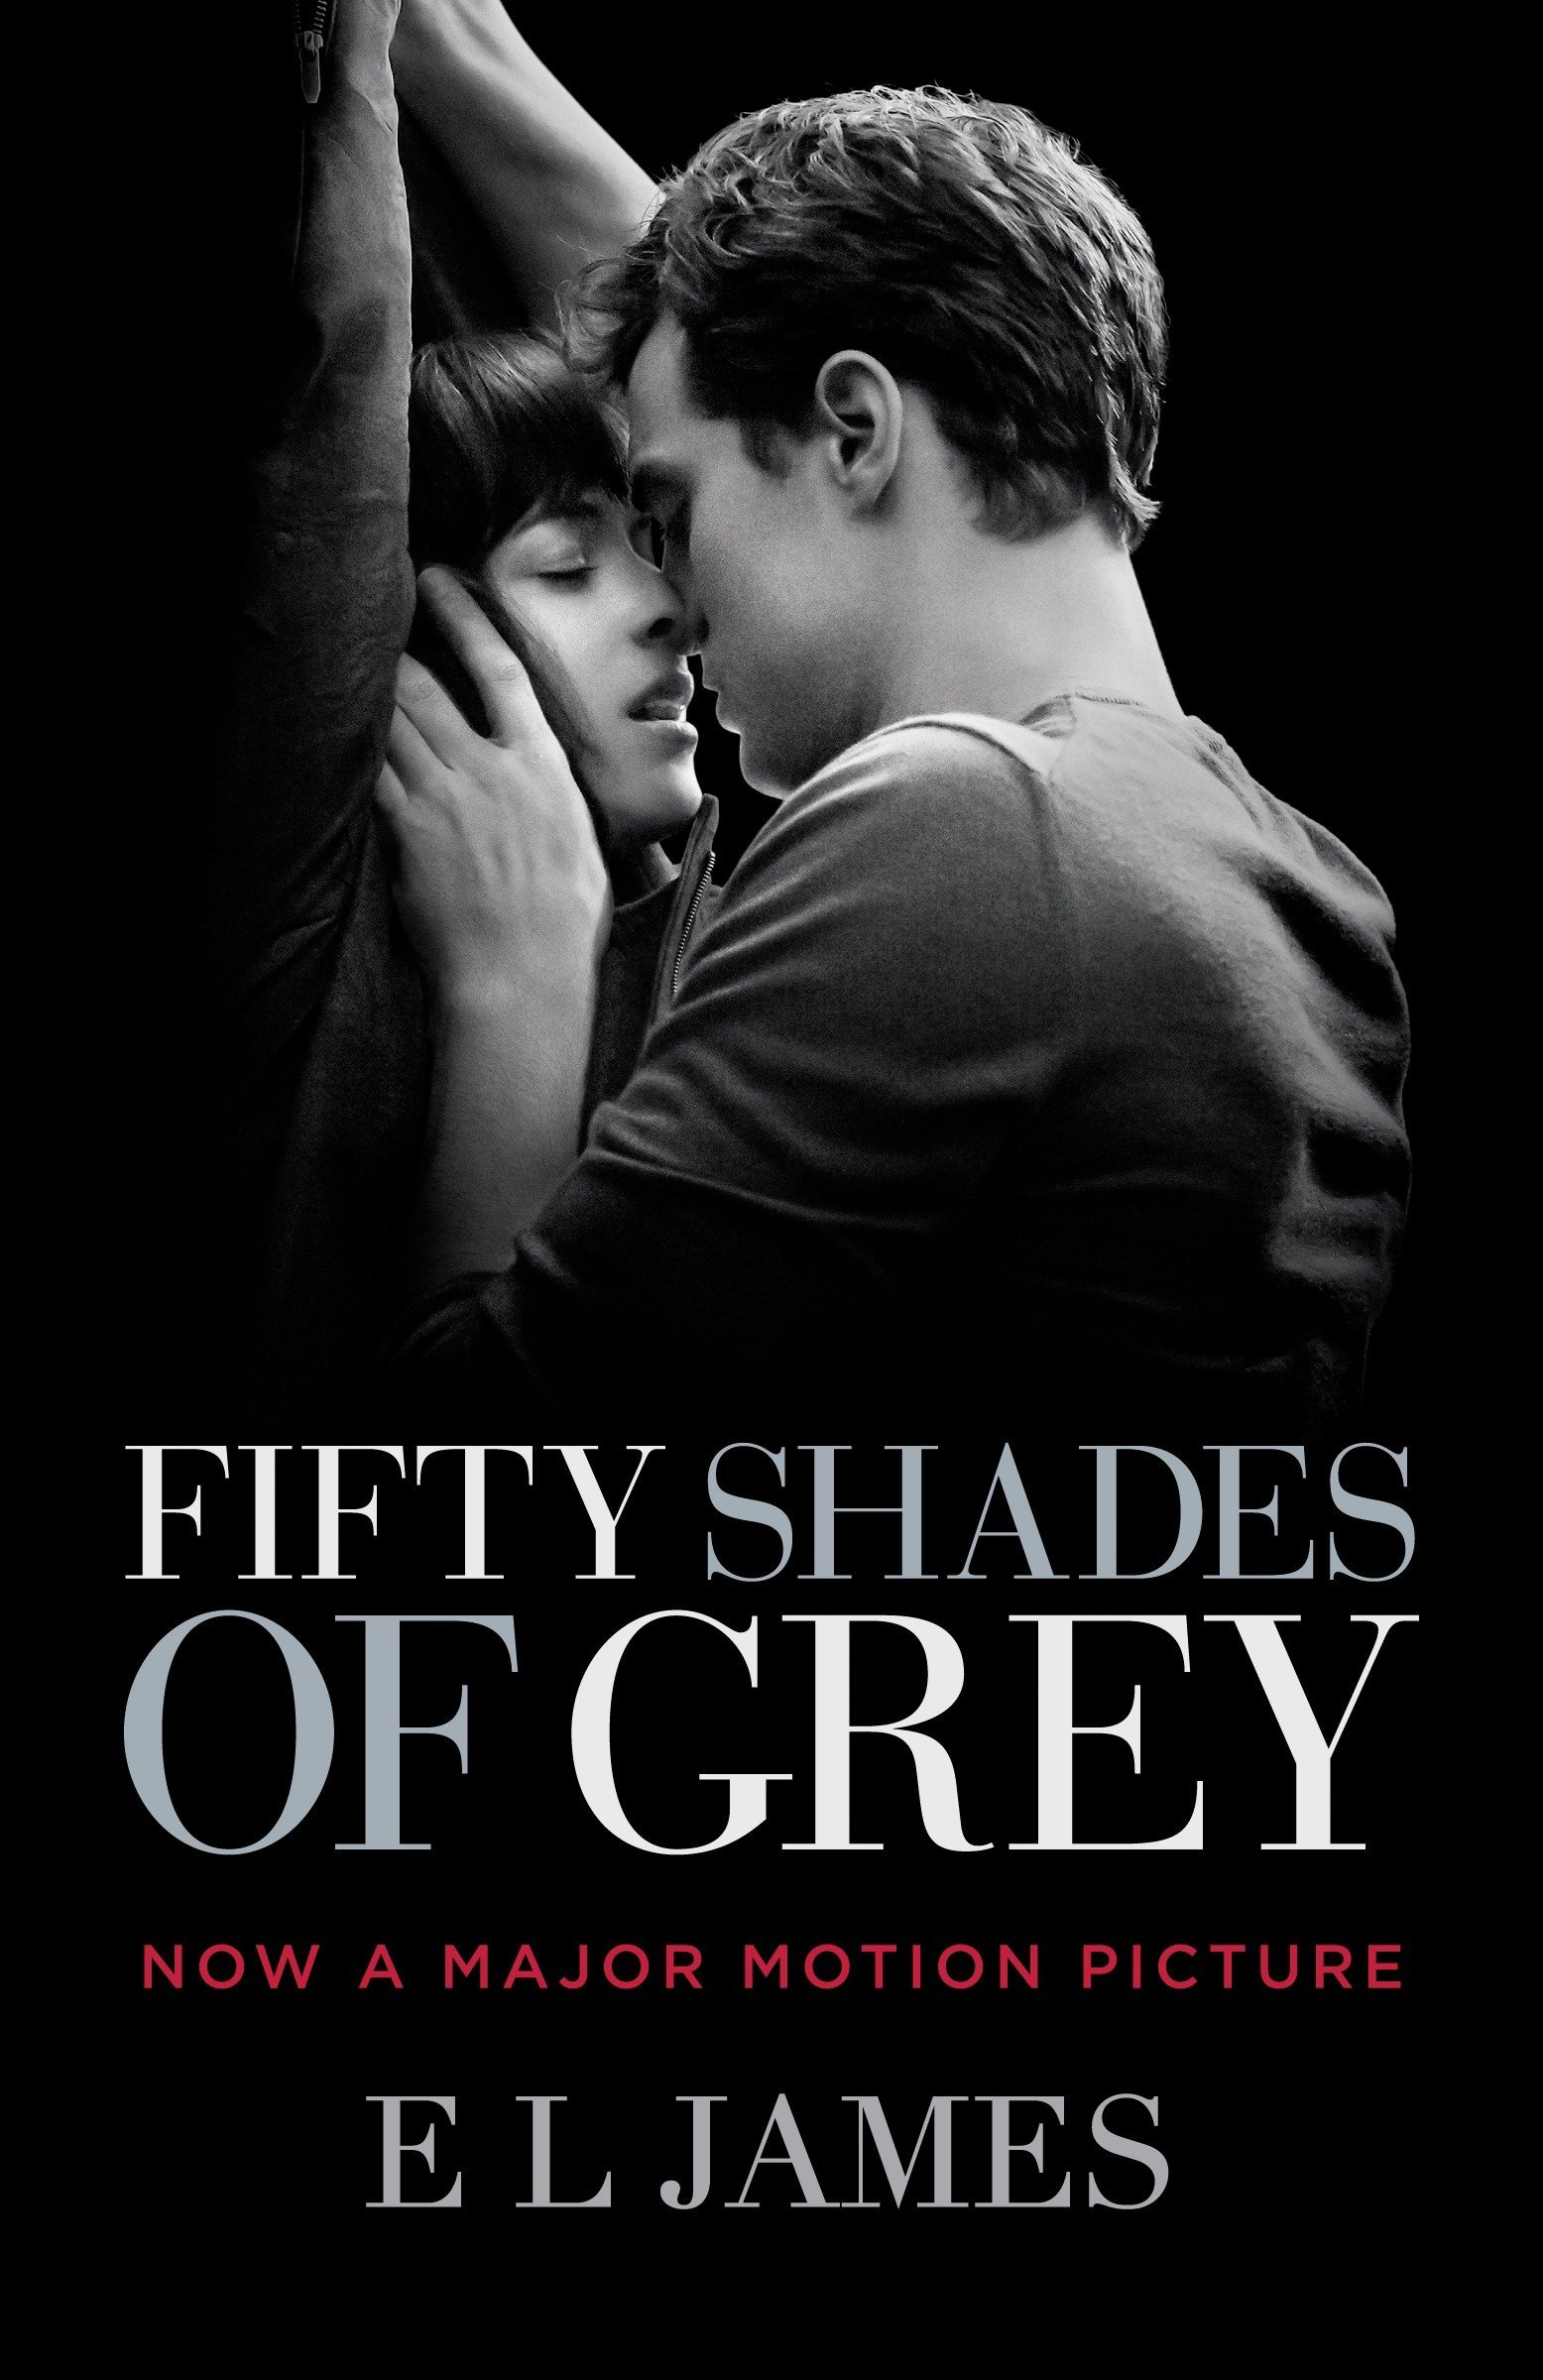 what is the ending of 50 shades of grey